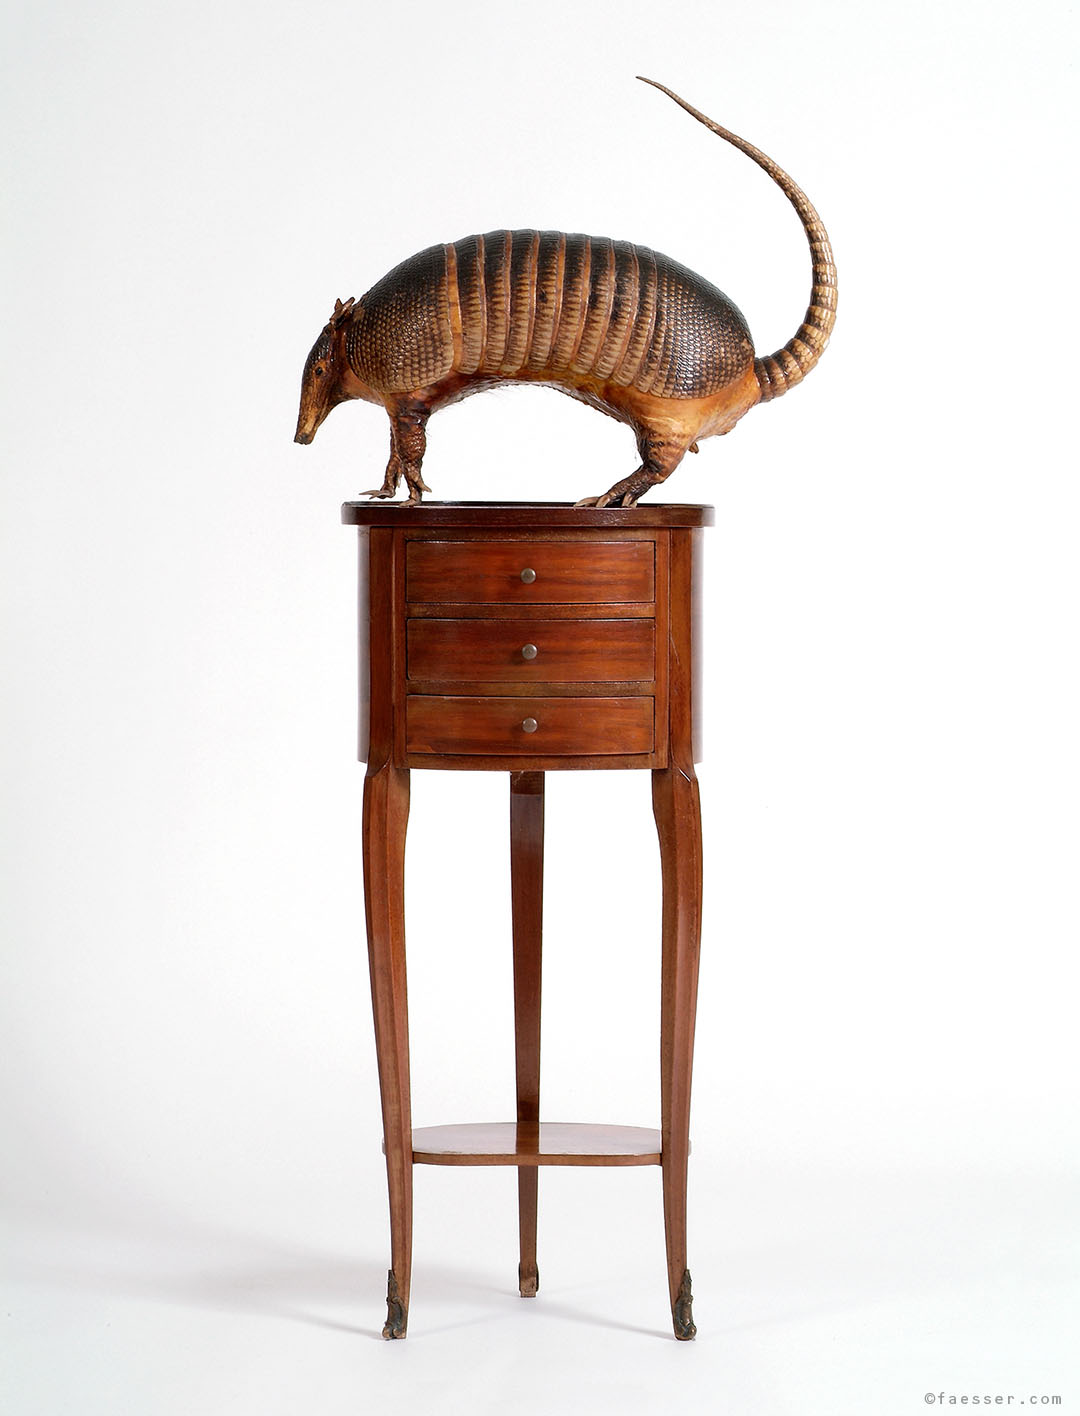 Armadillo on a small furniture chest of drawers; work of art; artist Roland Faesser, sculptor and painter 1990